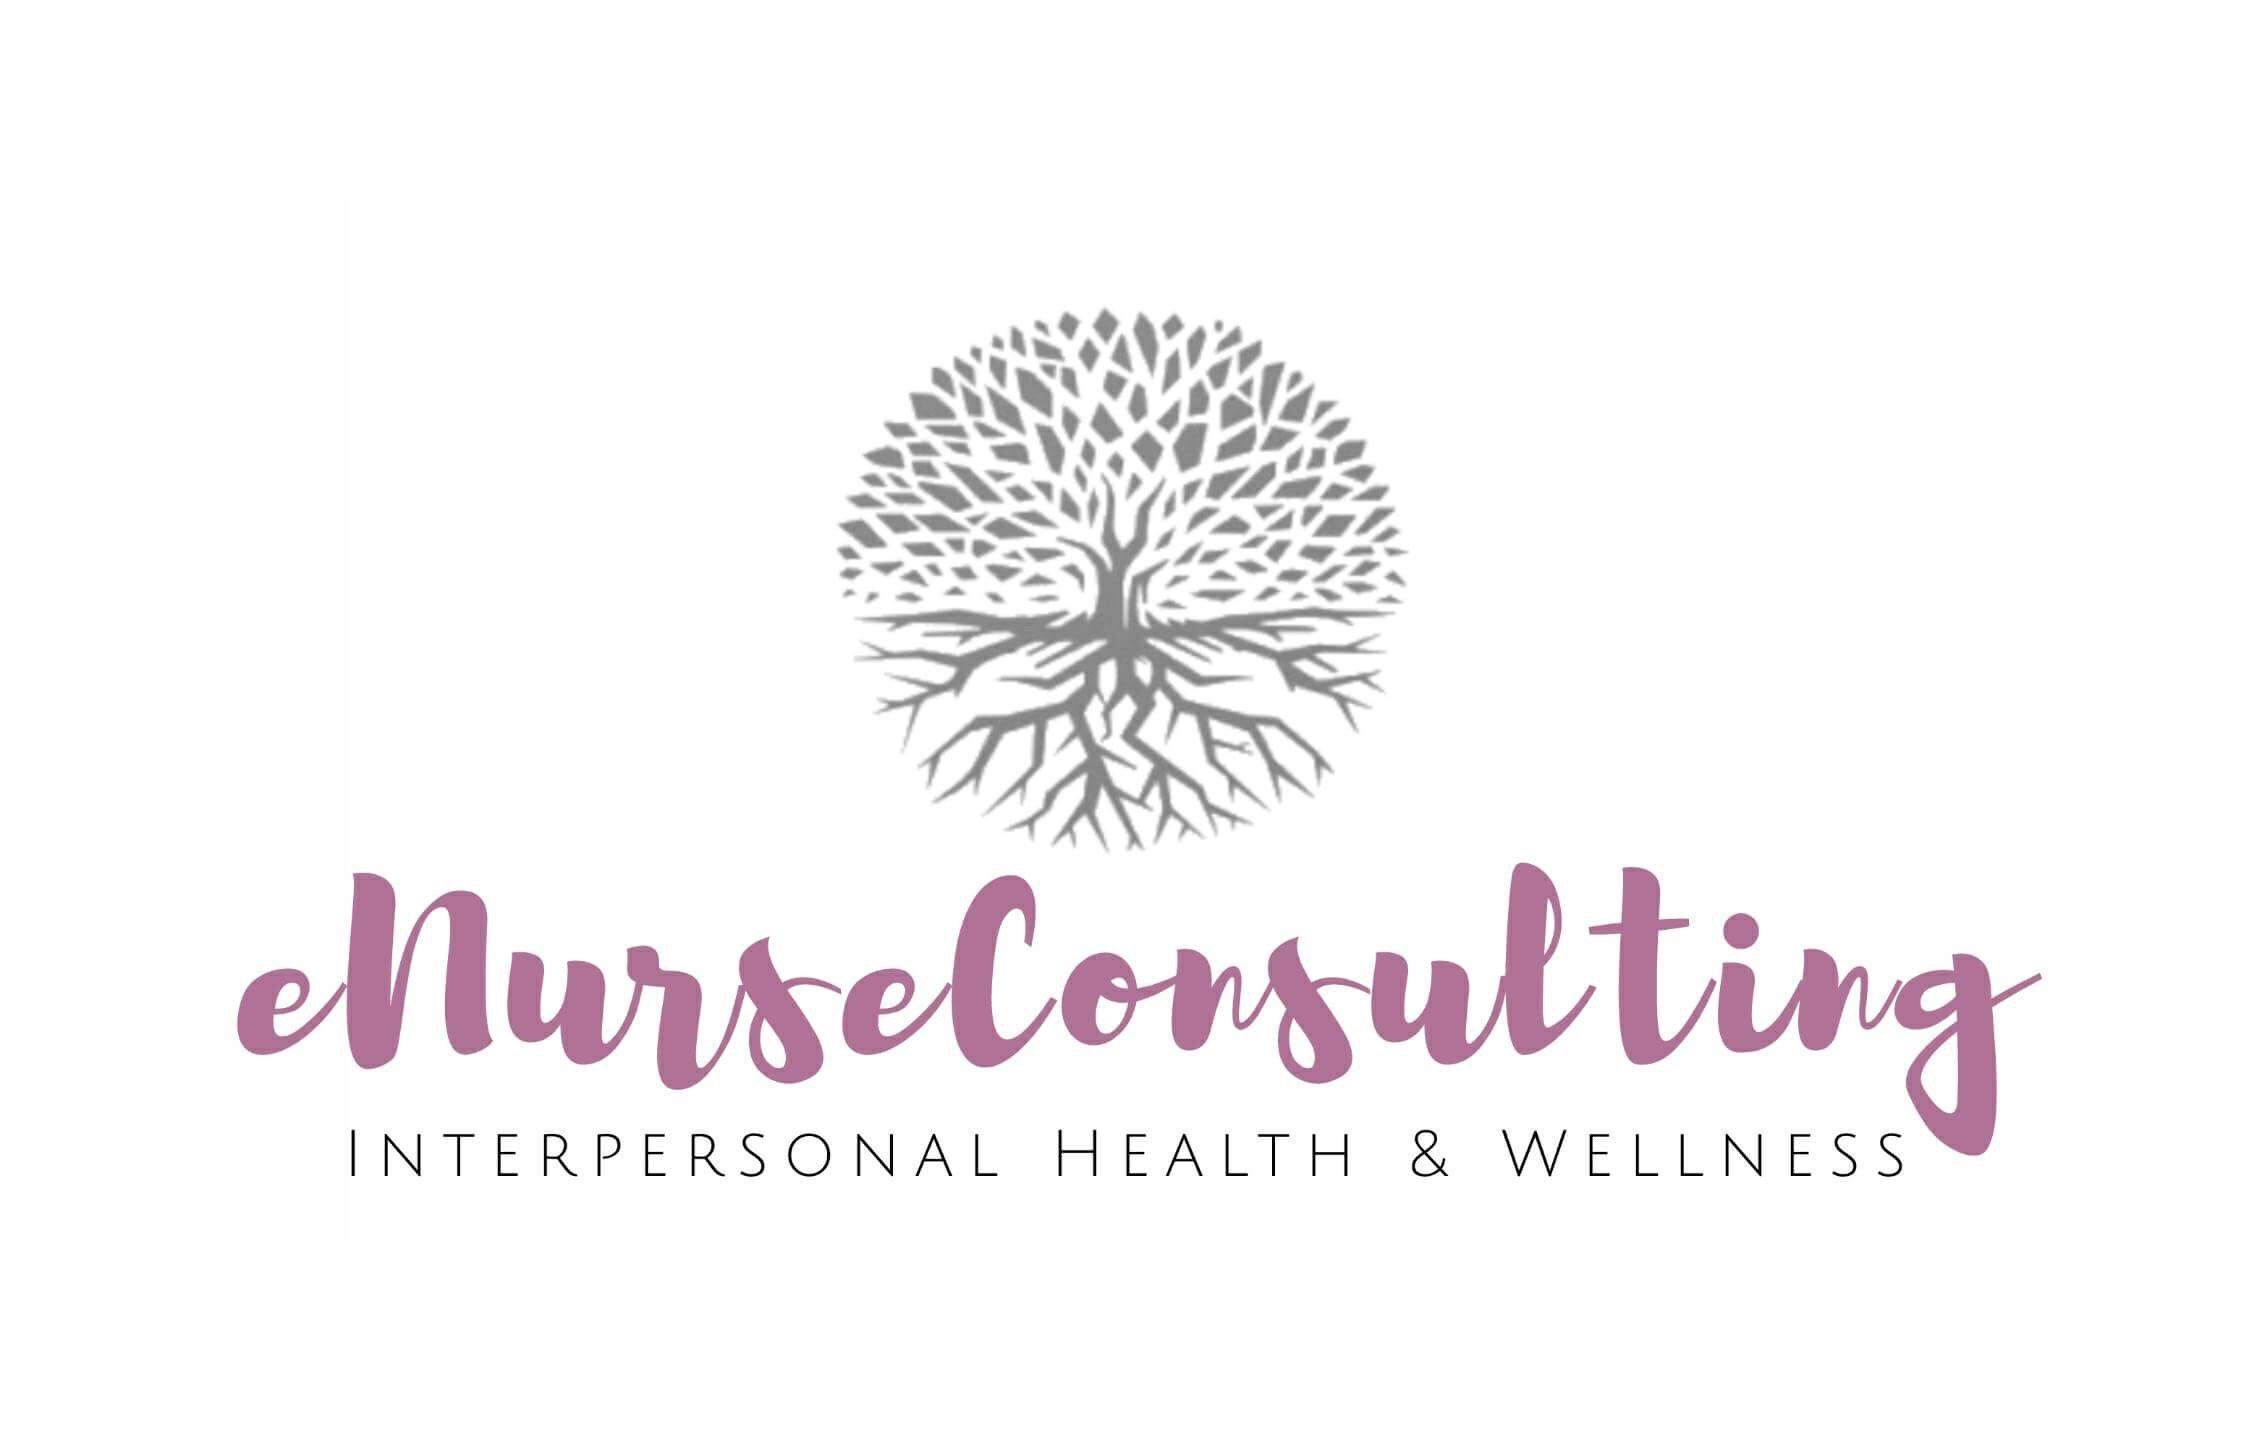 Ehealth Wellness Research Education Ehealth Wellness Home Decor Decals